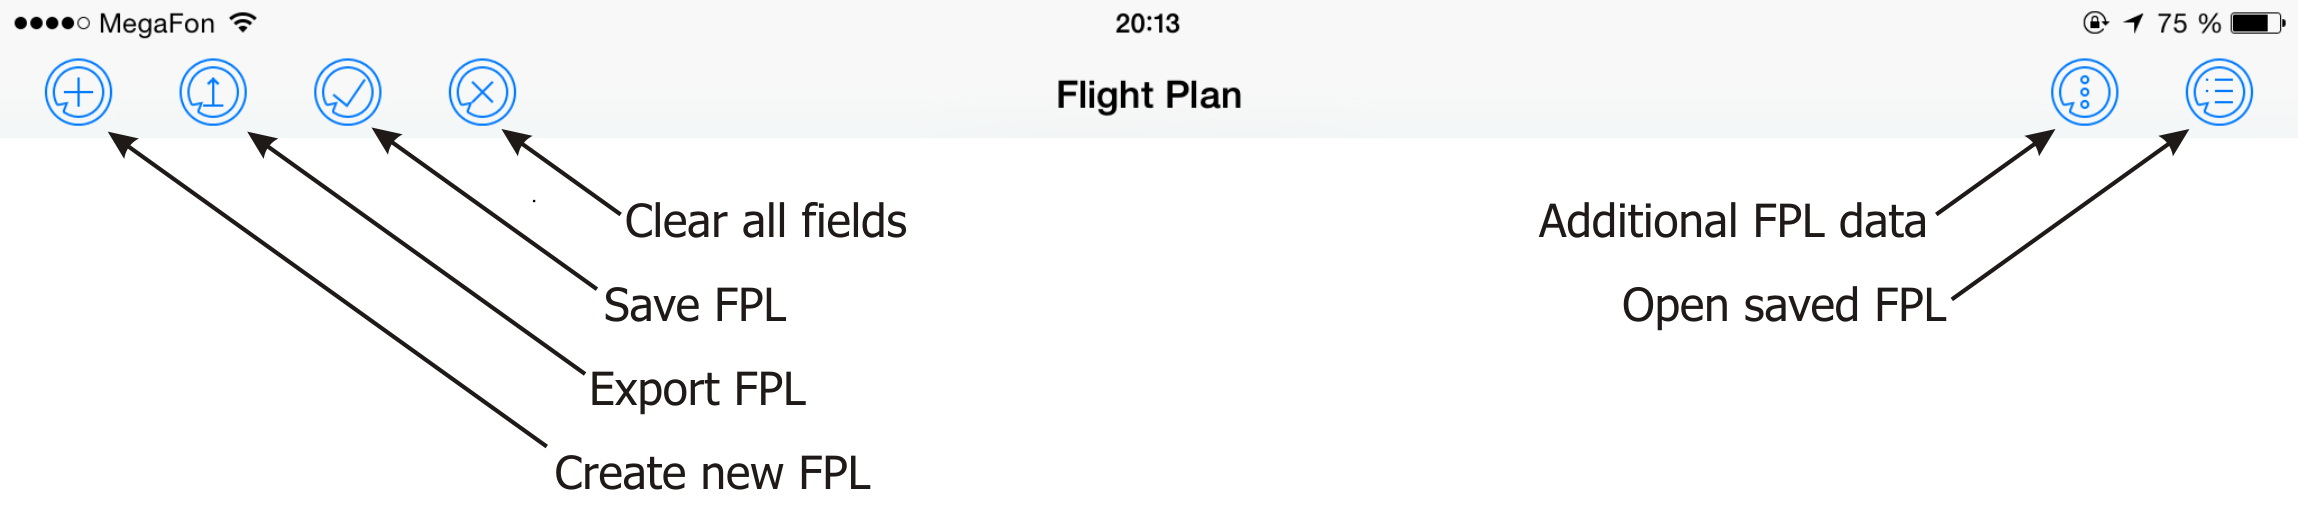 FlightPlan for EFB iPad